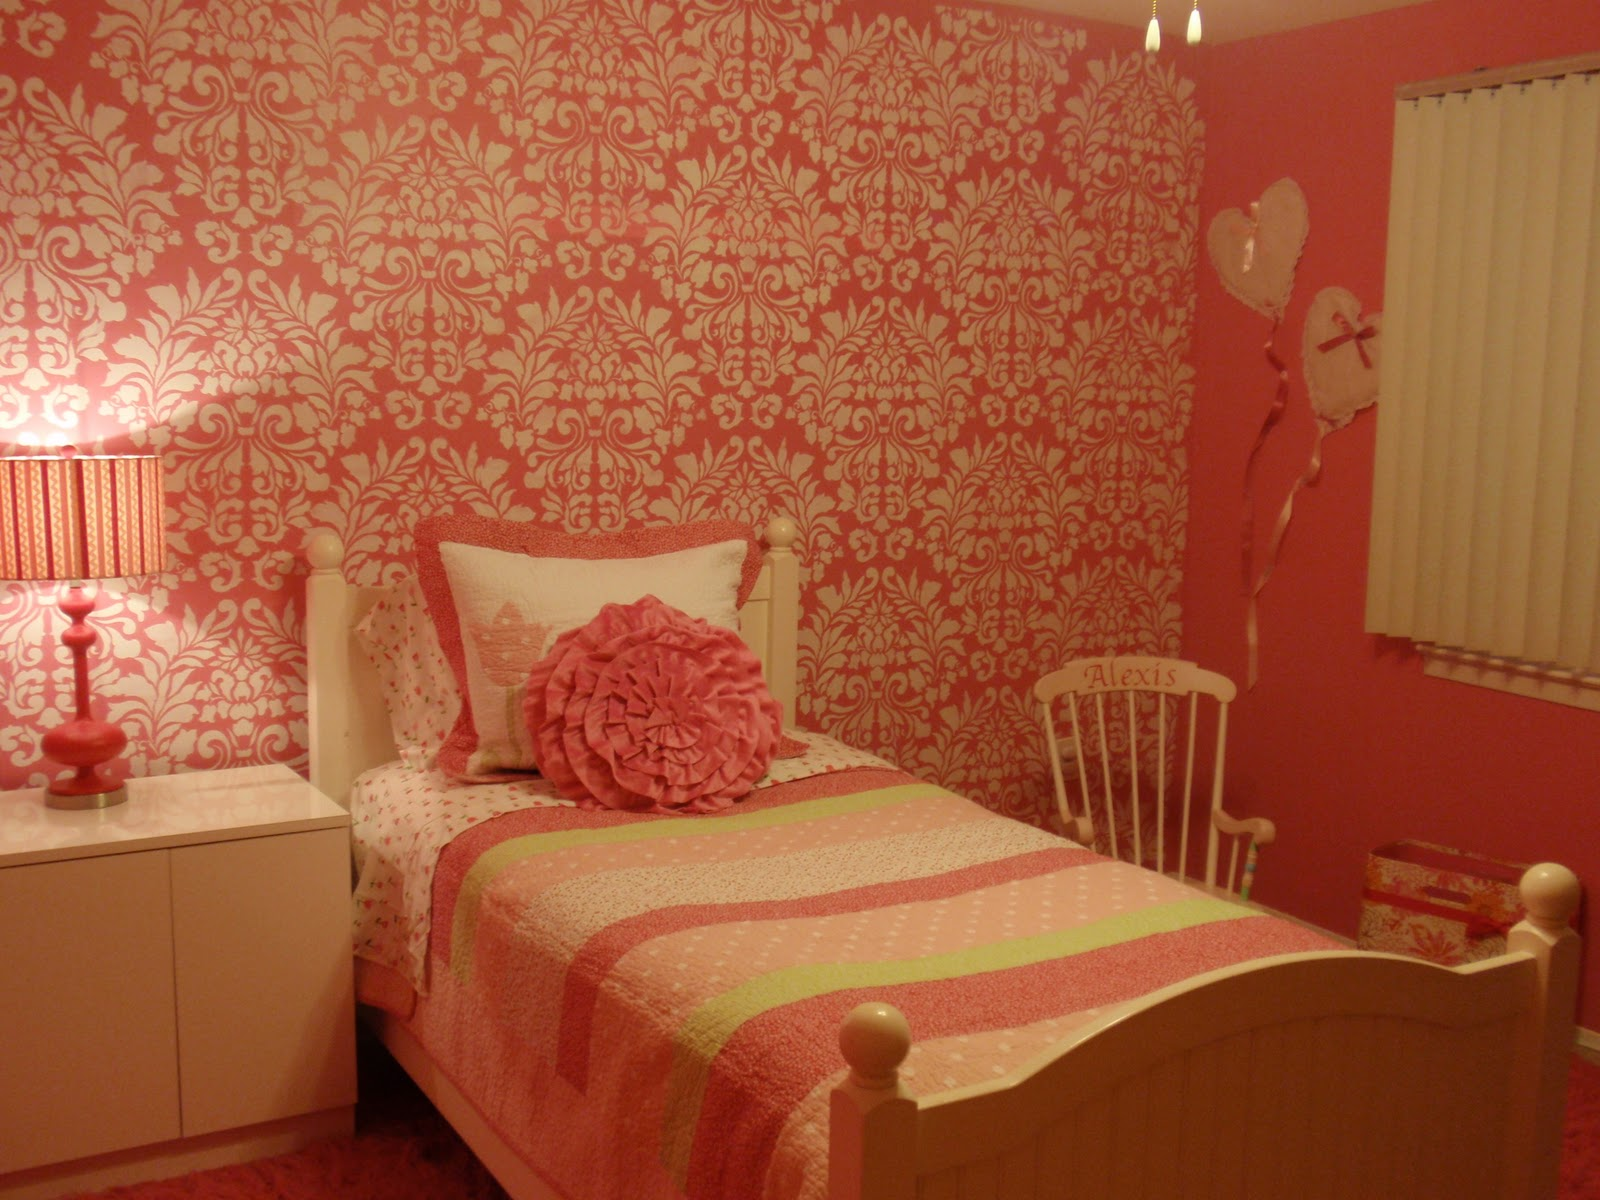 Diy by design little girl 39 s room reveal and royal design for Diy girls bedroom ideas